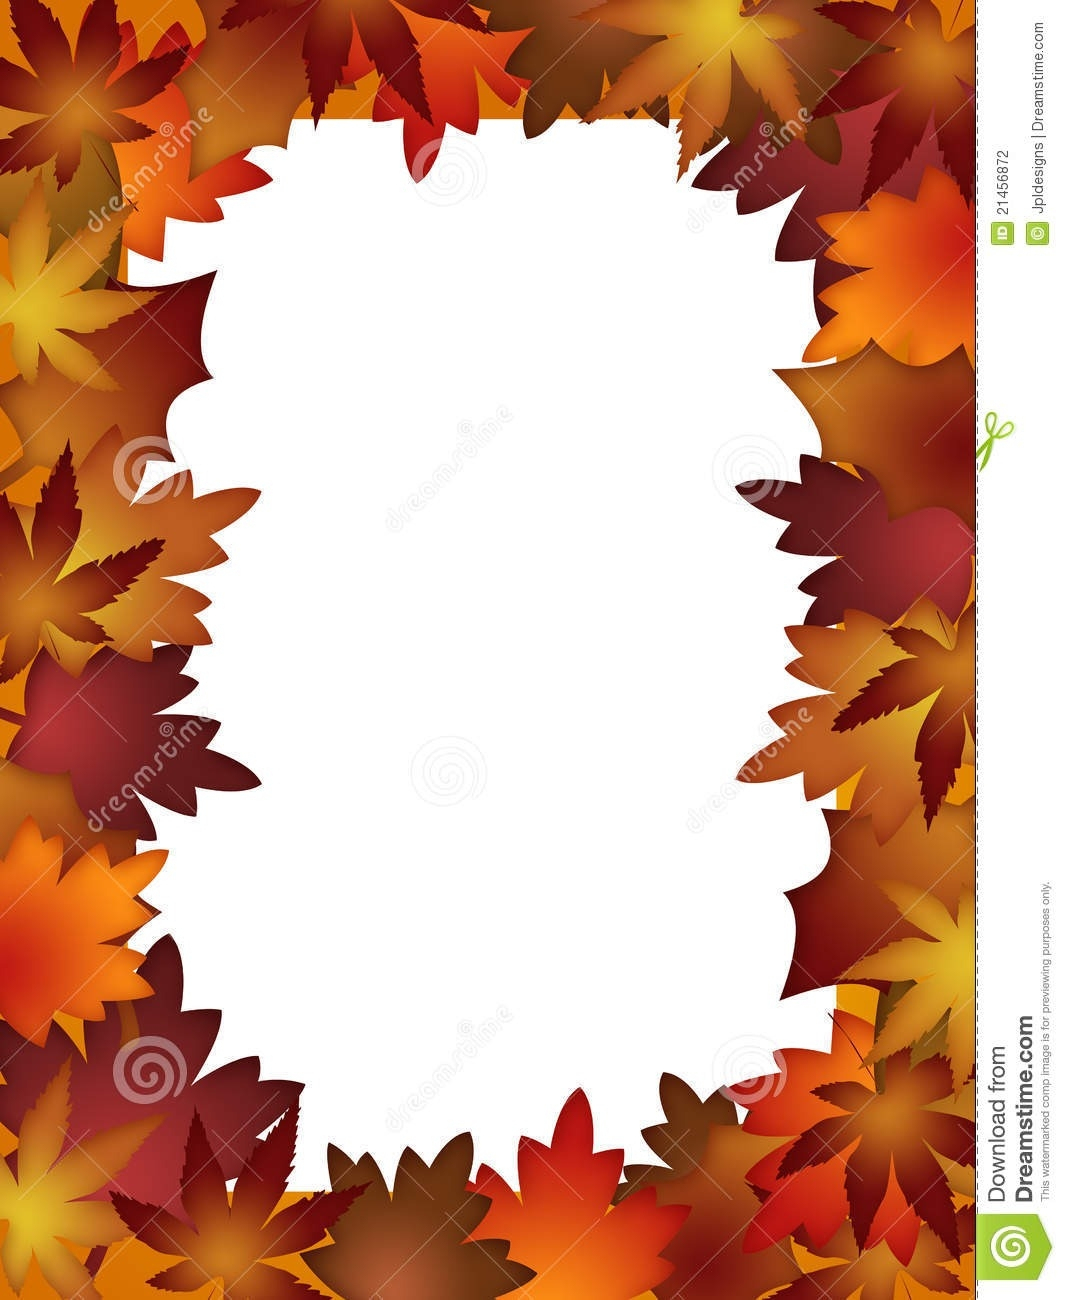 Fall Border Free Printable | Vectorborders - Free Printable Pictures Of Autumn Leaves